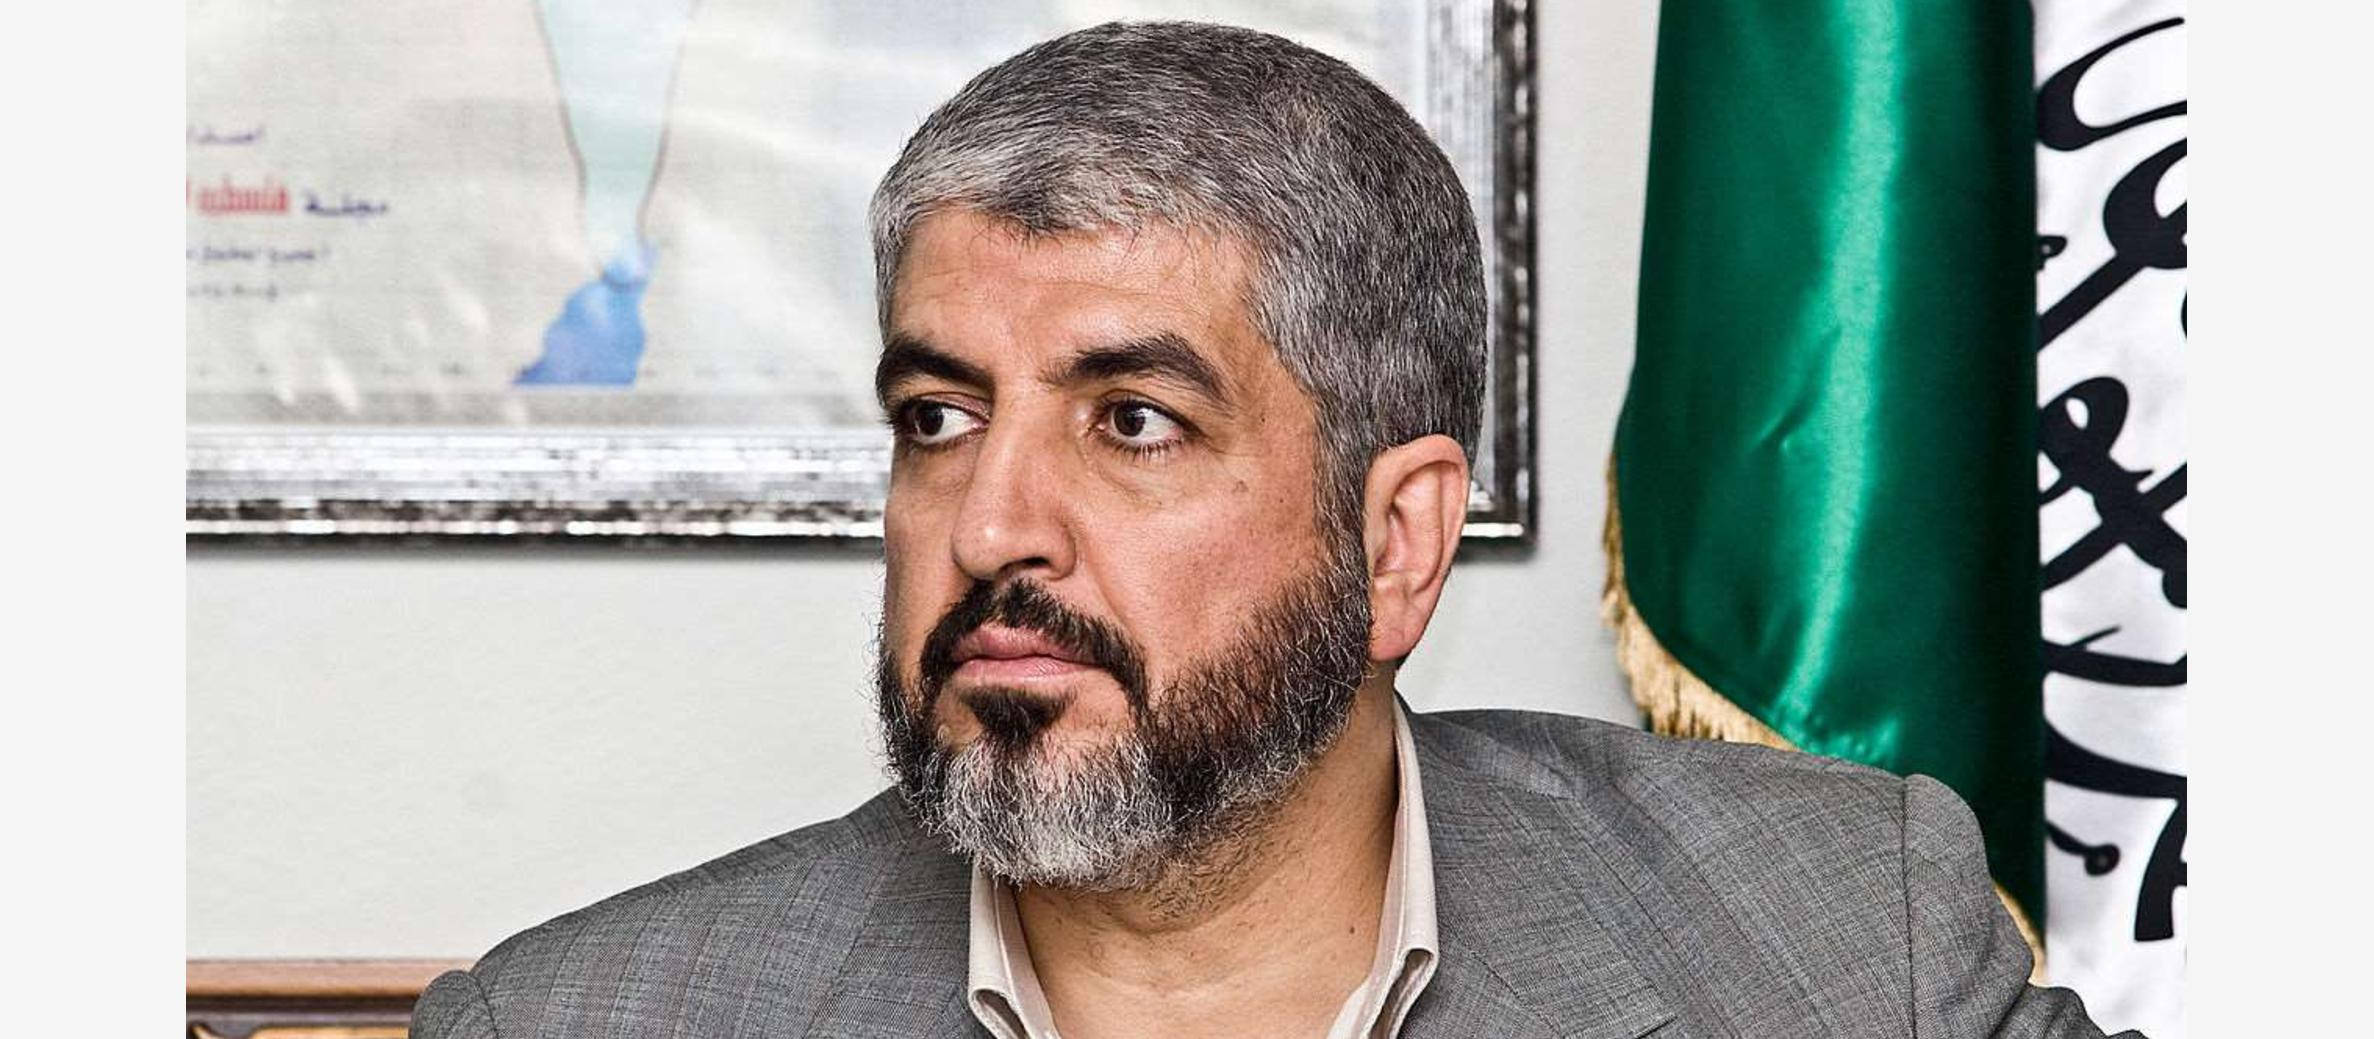 Attacks on Israelis will go on, Hamas leader says in South Africa